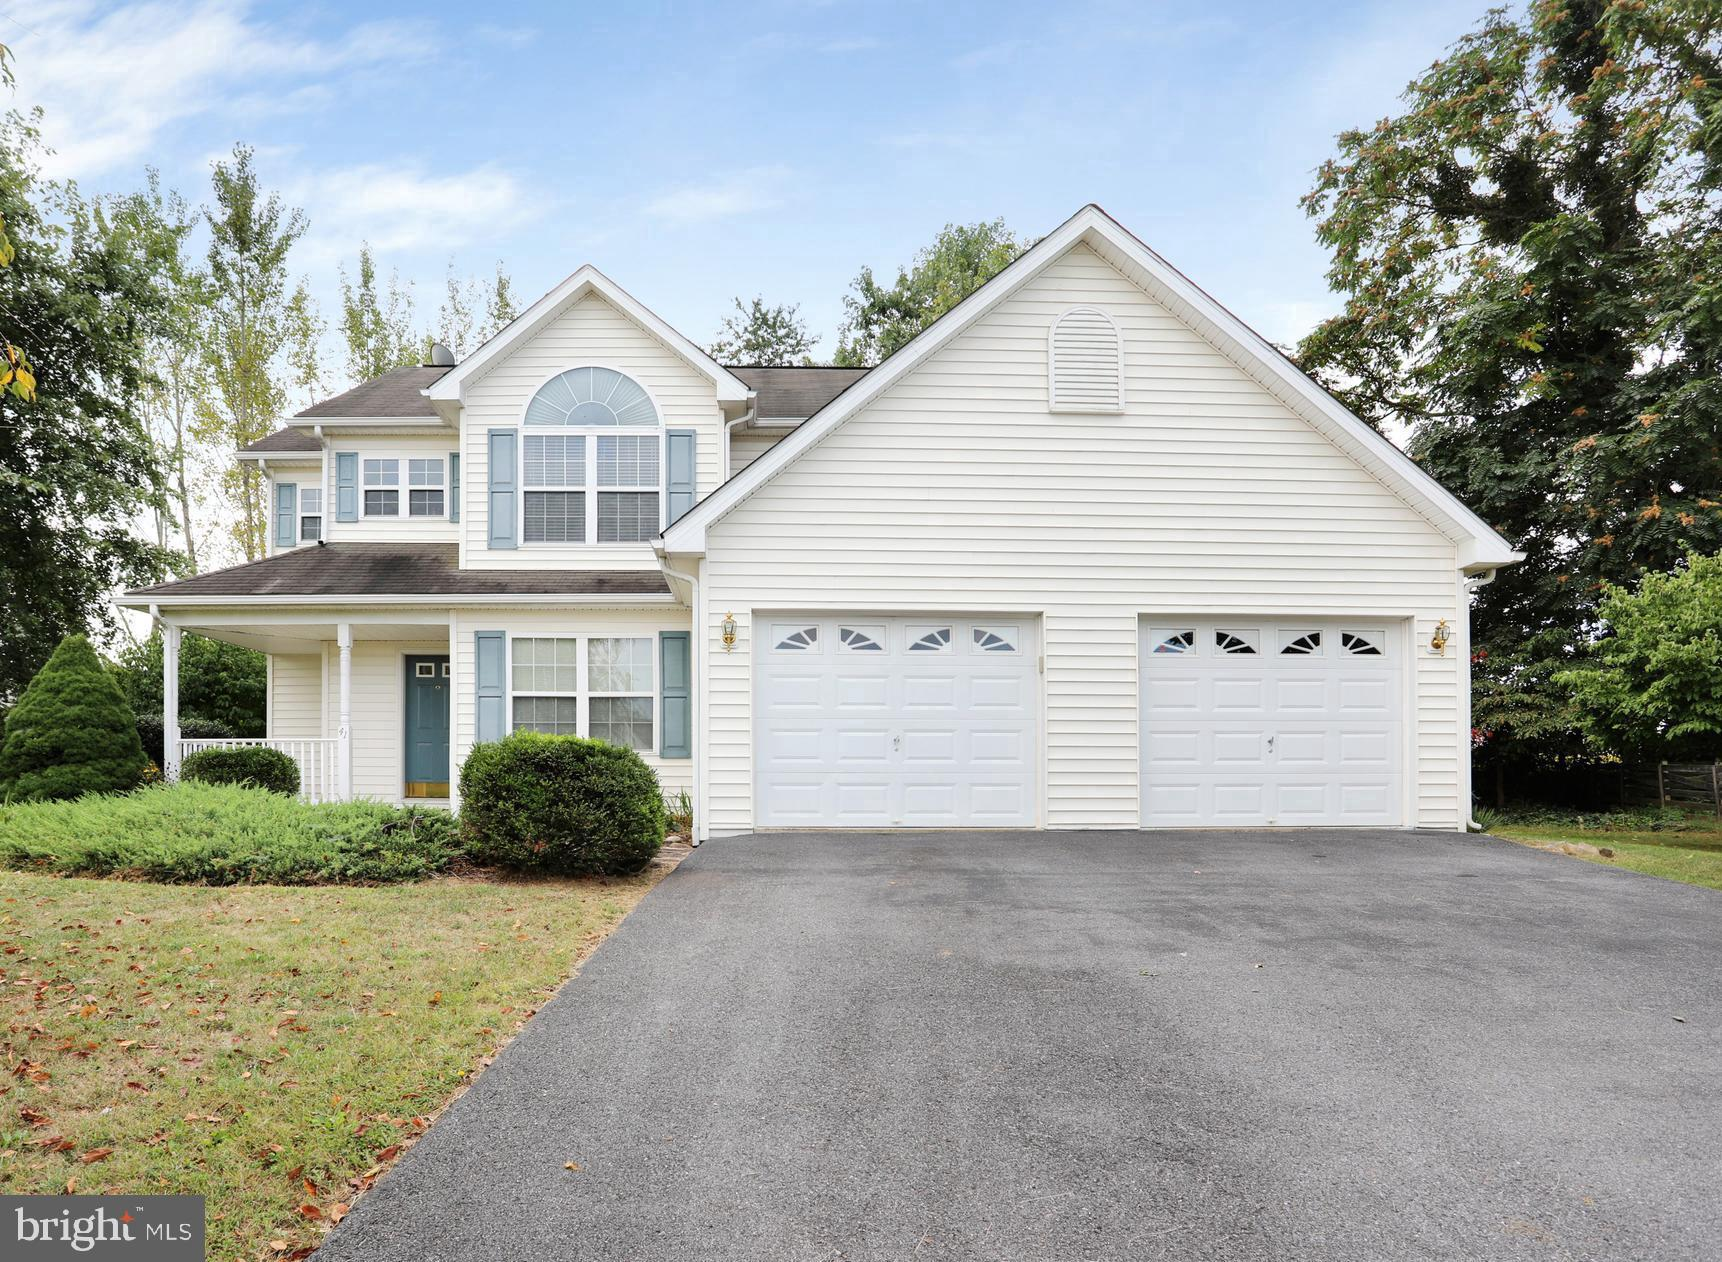 Beautiful colonial home in the Ridgefield community. Home features 3 bedrooms, 2.5 baths, large livi